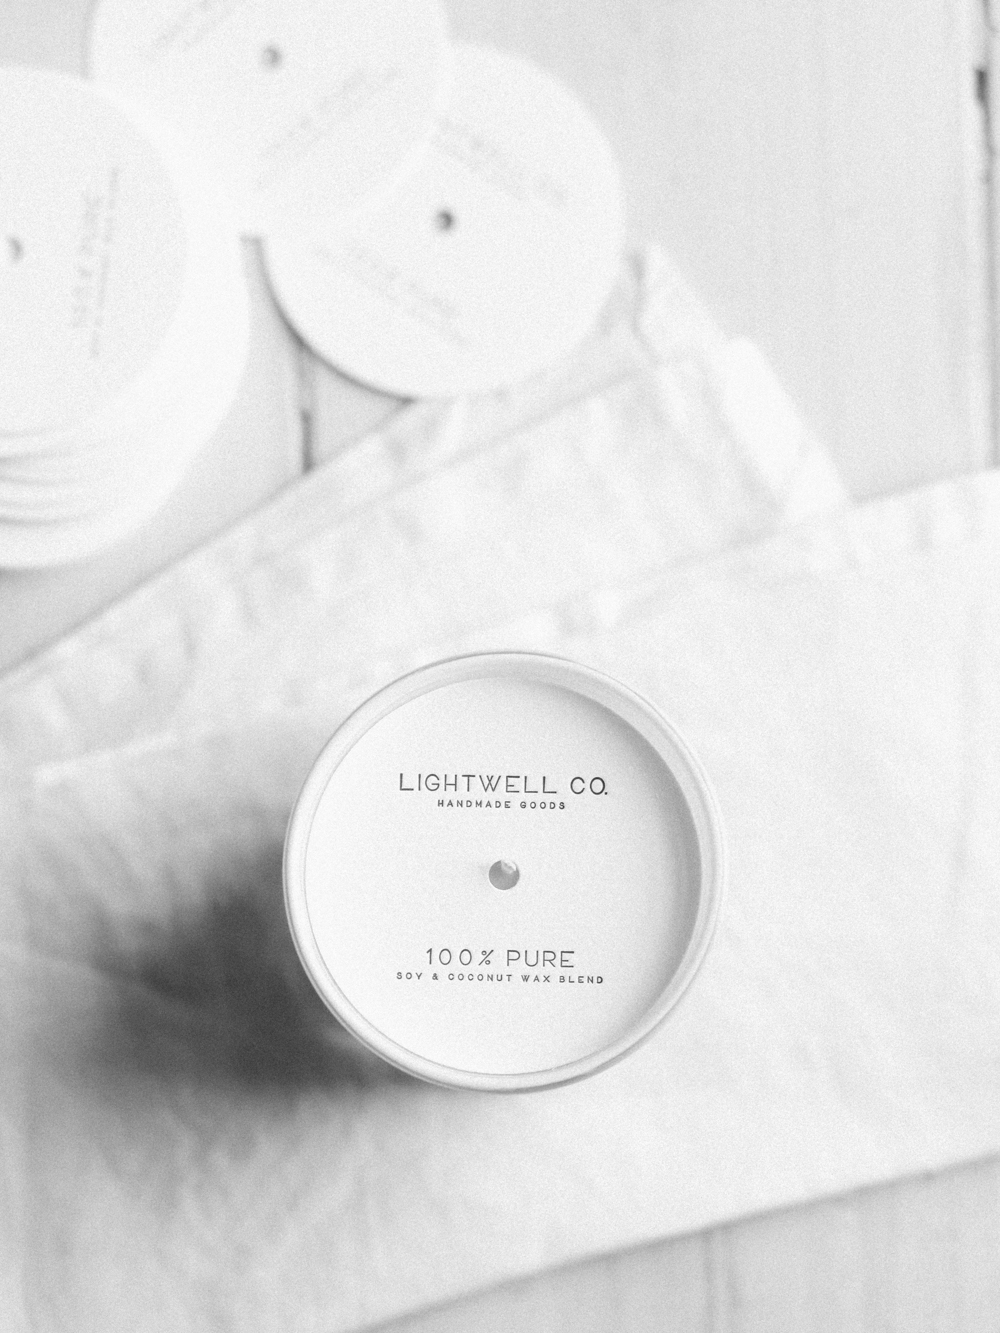 brand photographer Christine Gosch - lightwell co - handmade candles in houston Texas-19.jpg